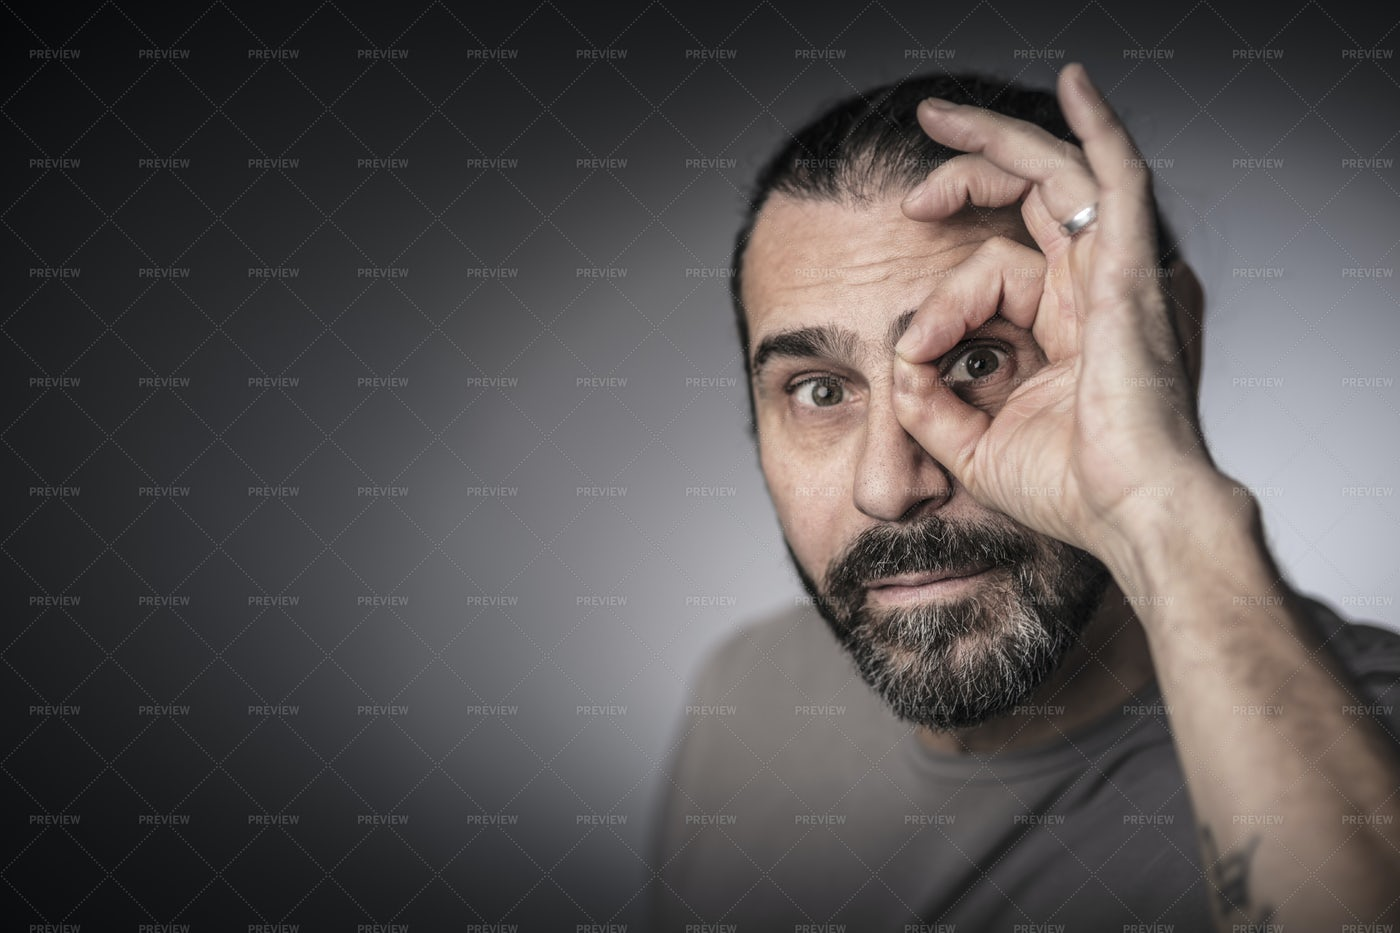 Looking Through His Fingers: Stock Photos